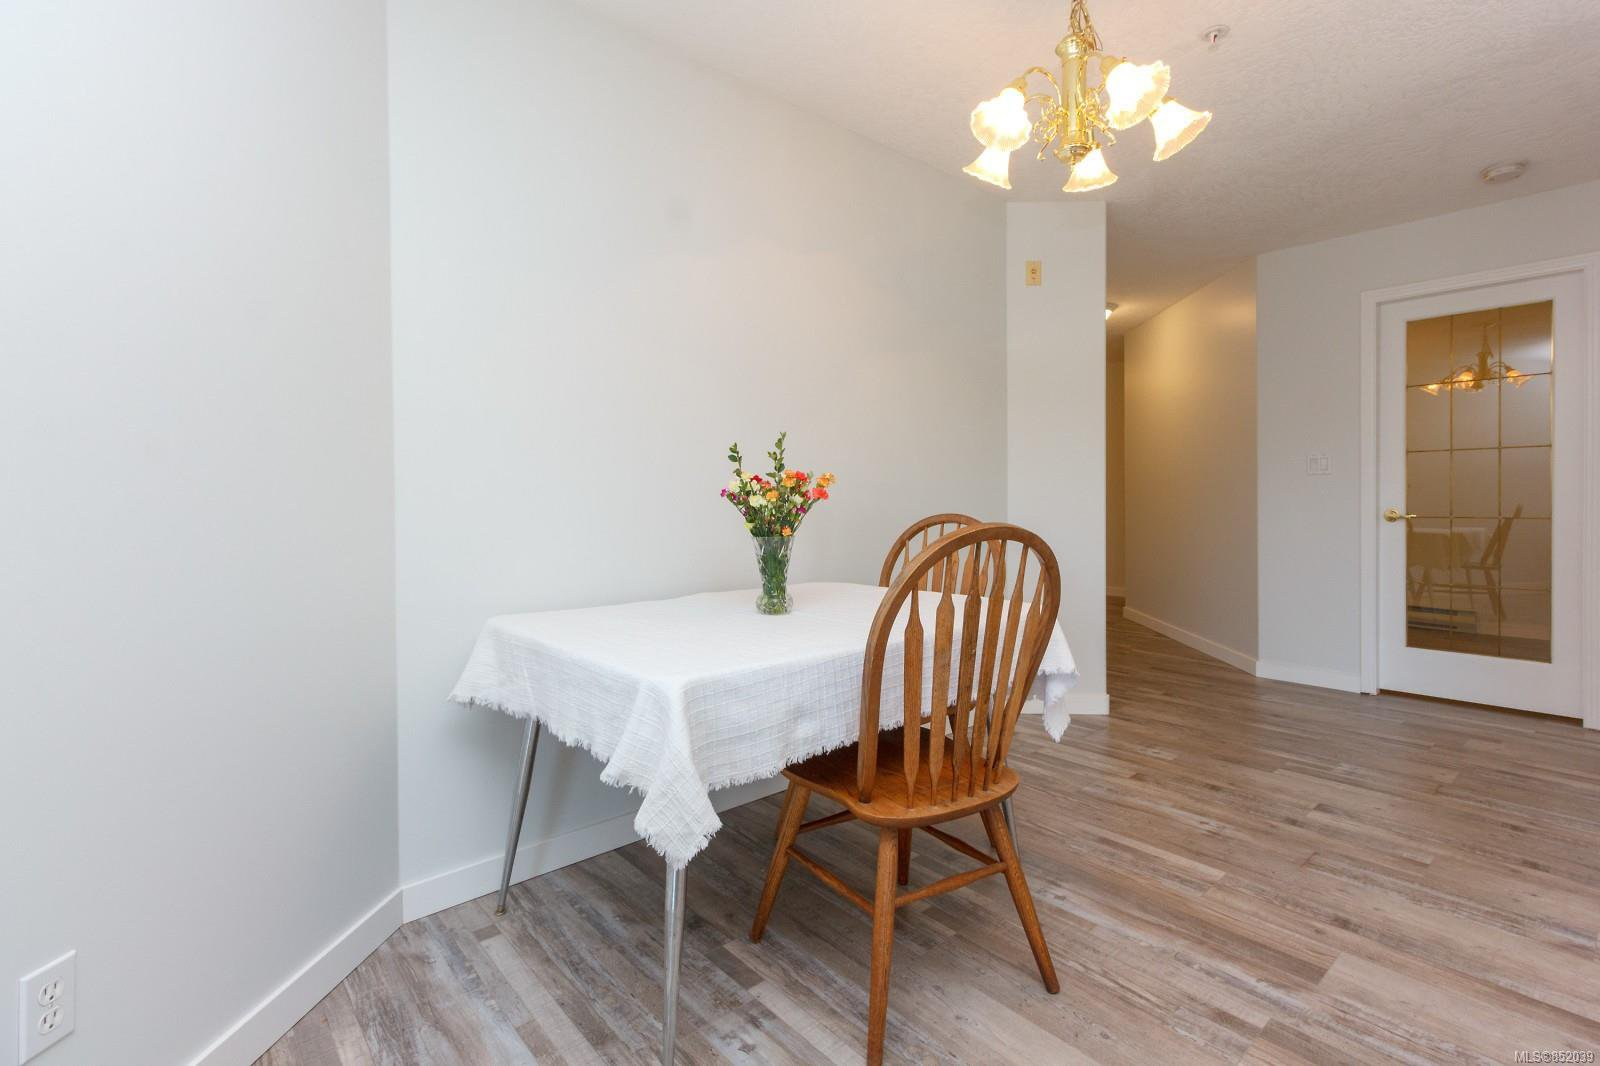 Photo 9: Photos: 109 1240 Verdier Ave in : CS Brentwood Bay Condo for sale (Central Saanich)  : MLS®# 852039